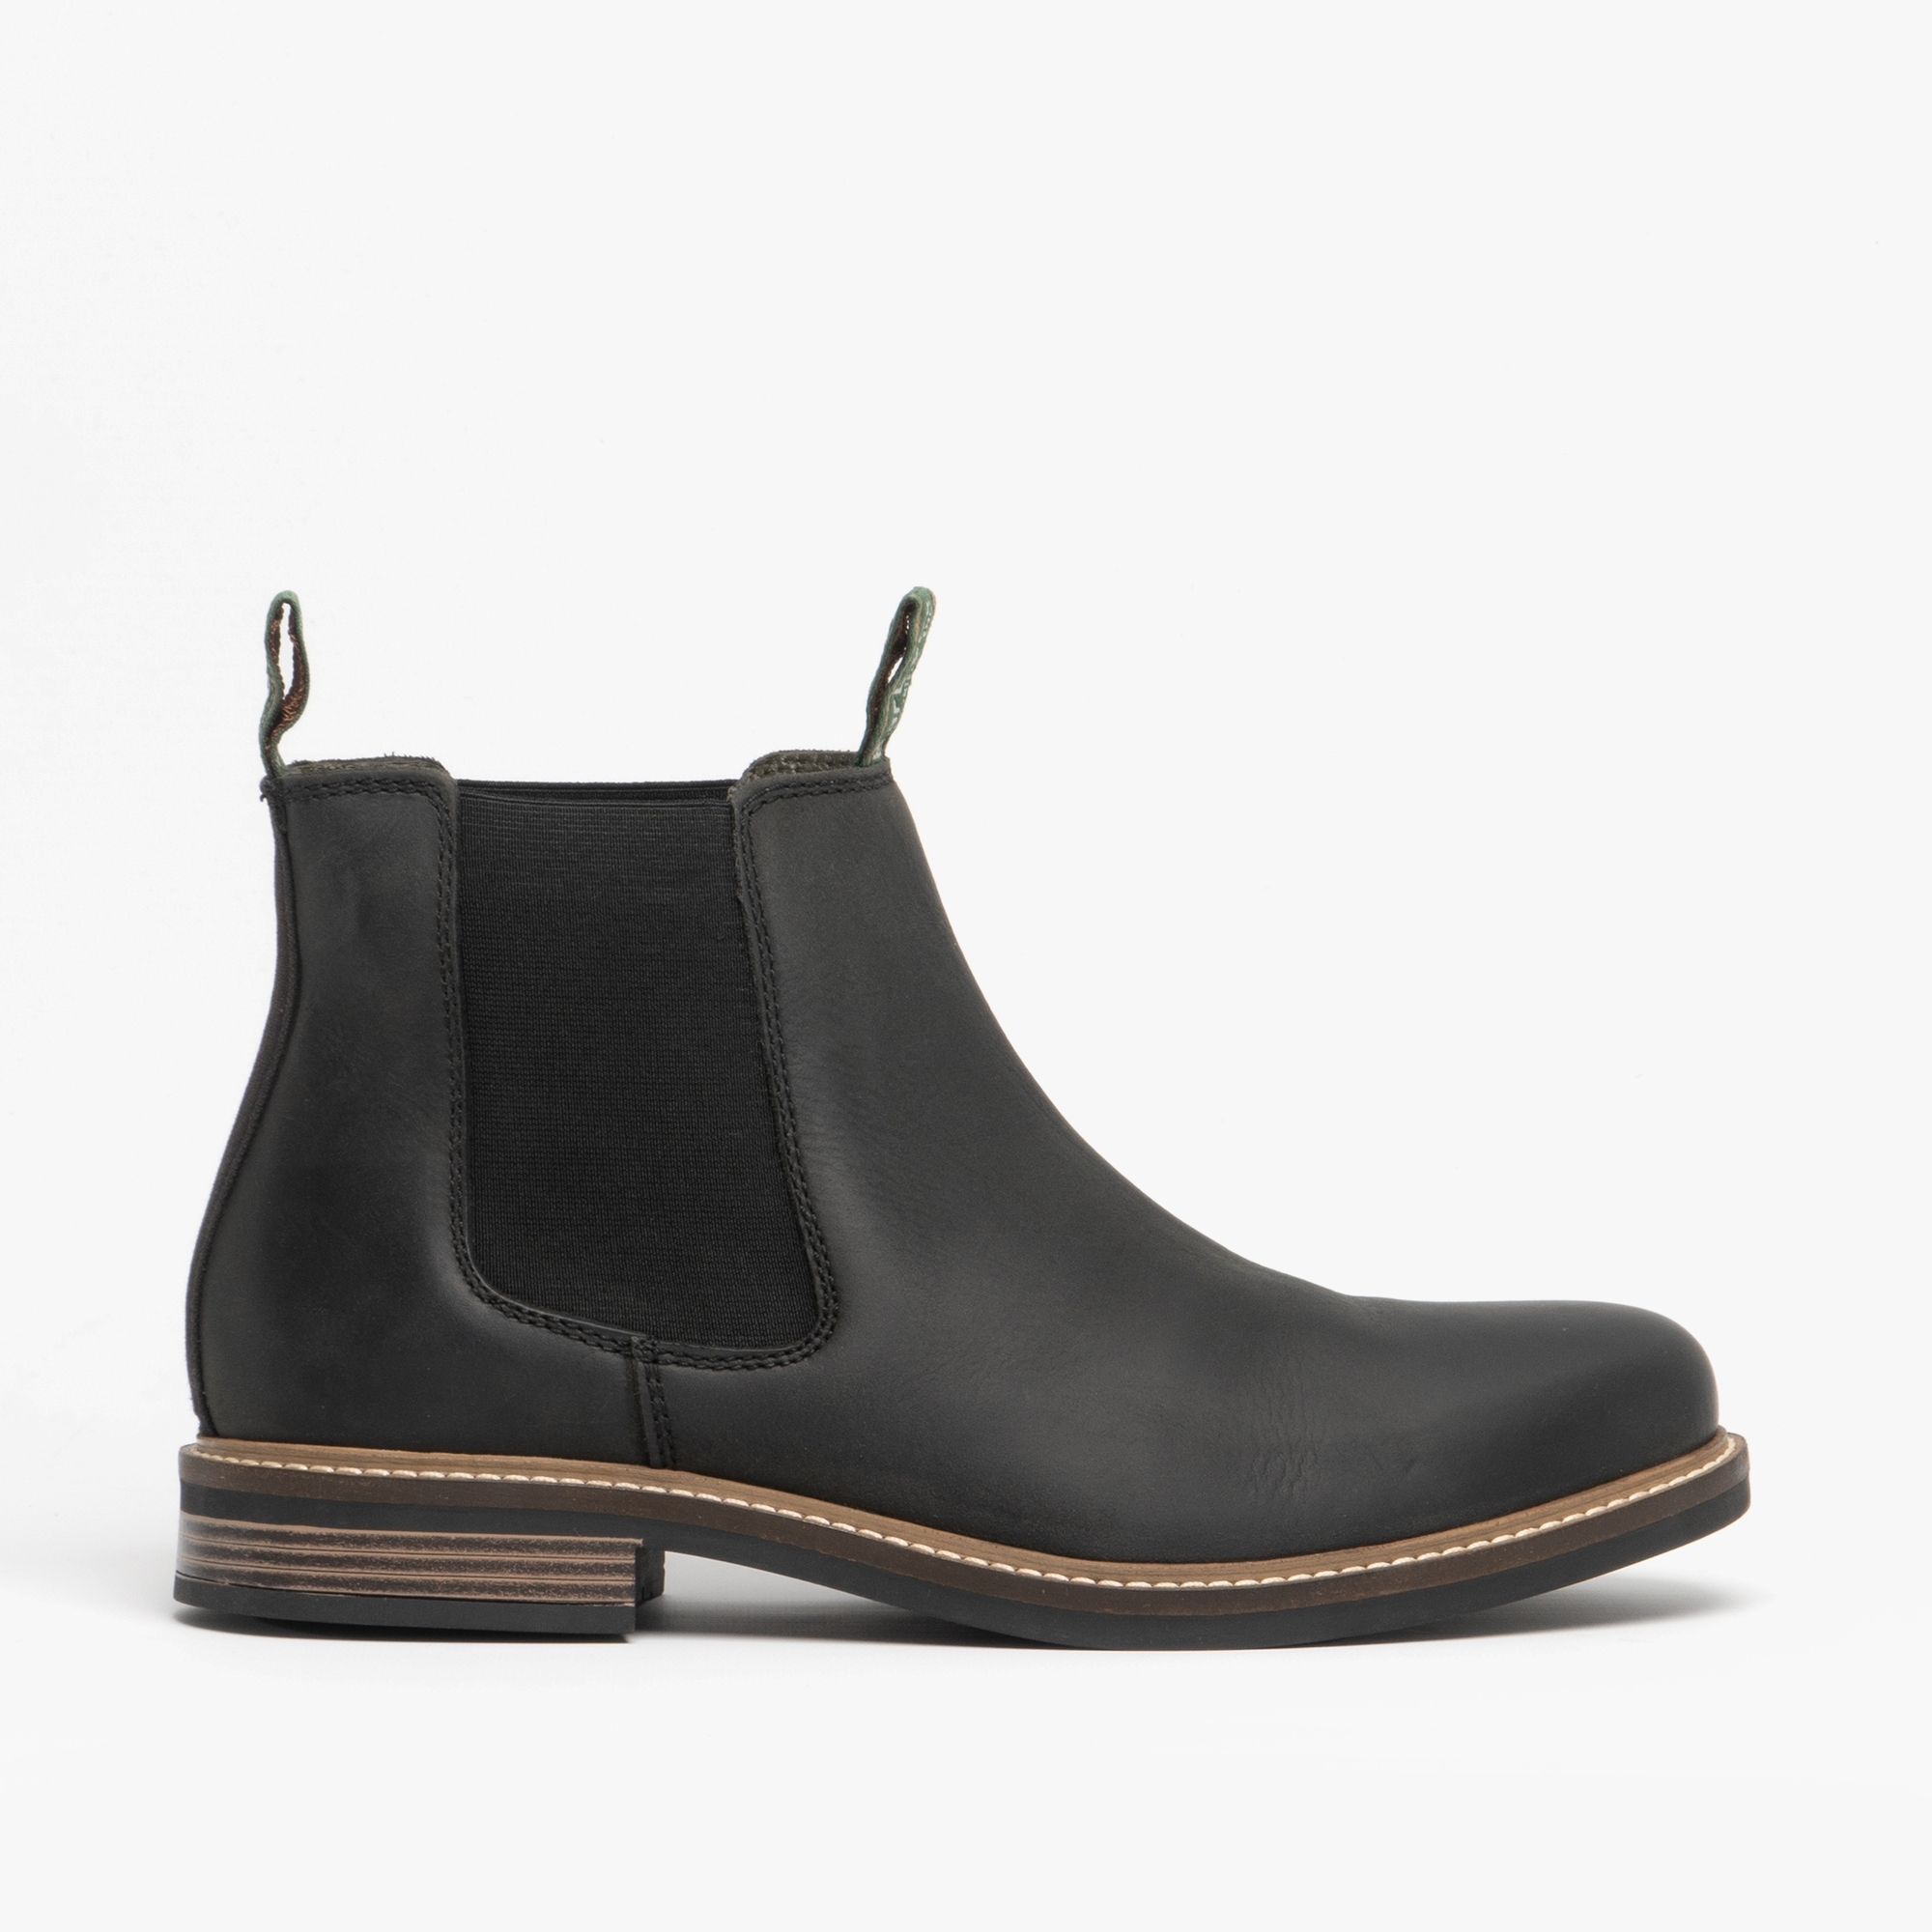 463706cc715 Barbour FARSLEY Mens Leather Chelsea Boots Black